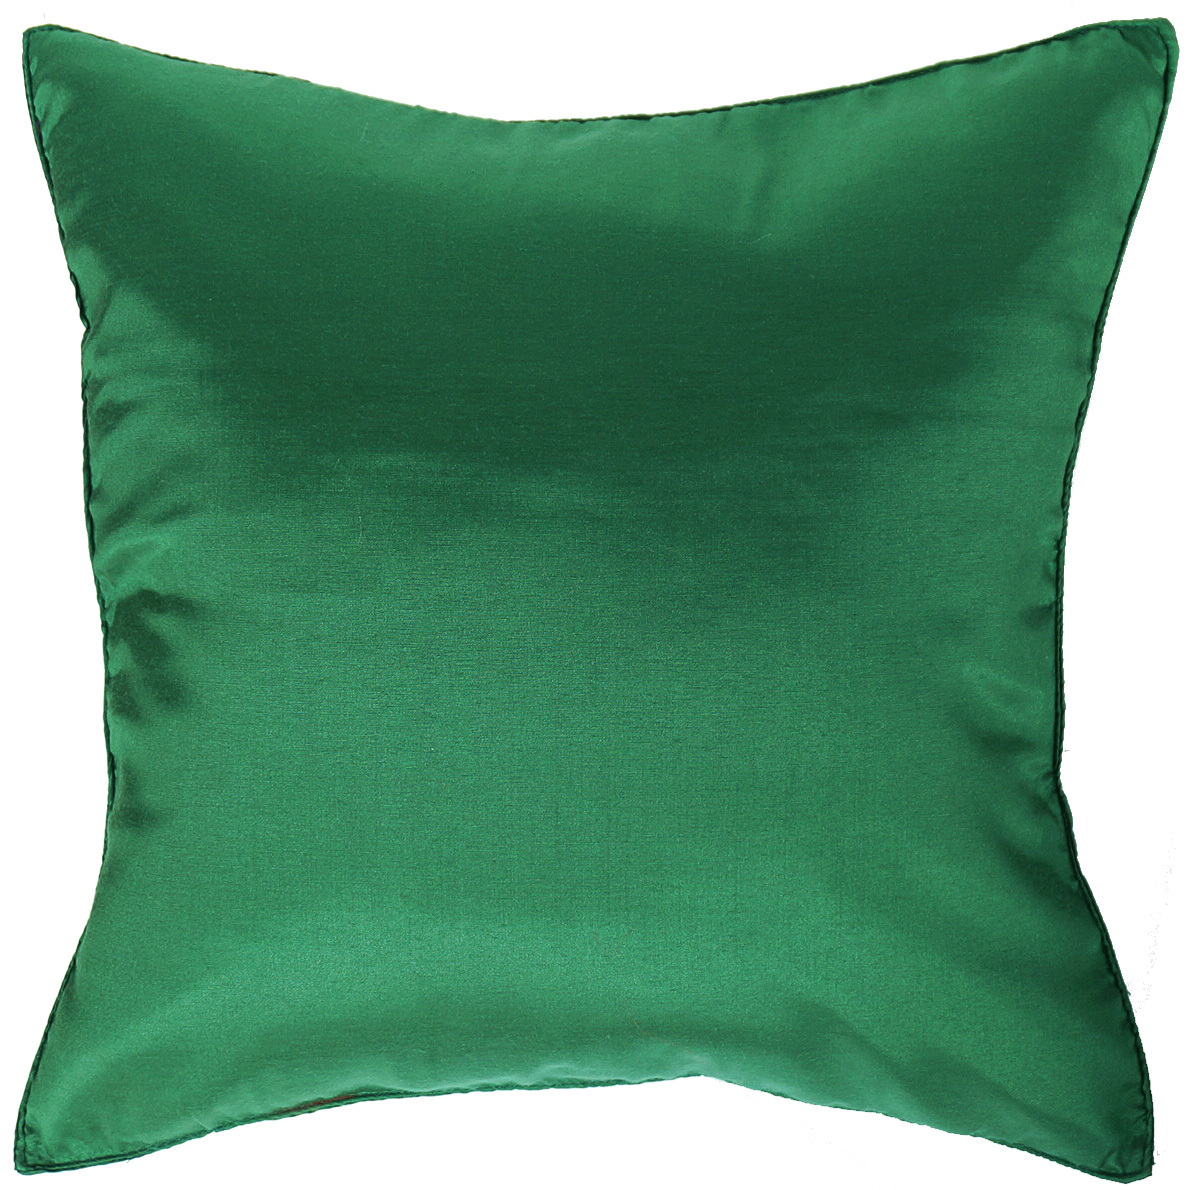 Throw Pillow Covers 20x20 : 1x SILK LARGE DECORATIVE THROW PILLOW COVER FOR COUCH SOFA BED SOLID COLOR 20x20 - Pillows